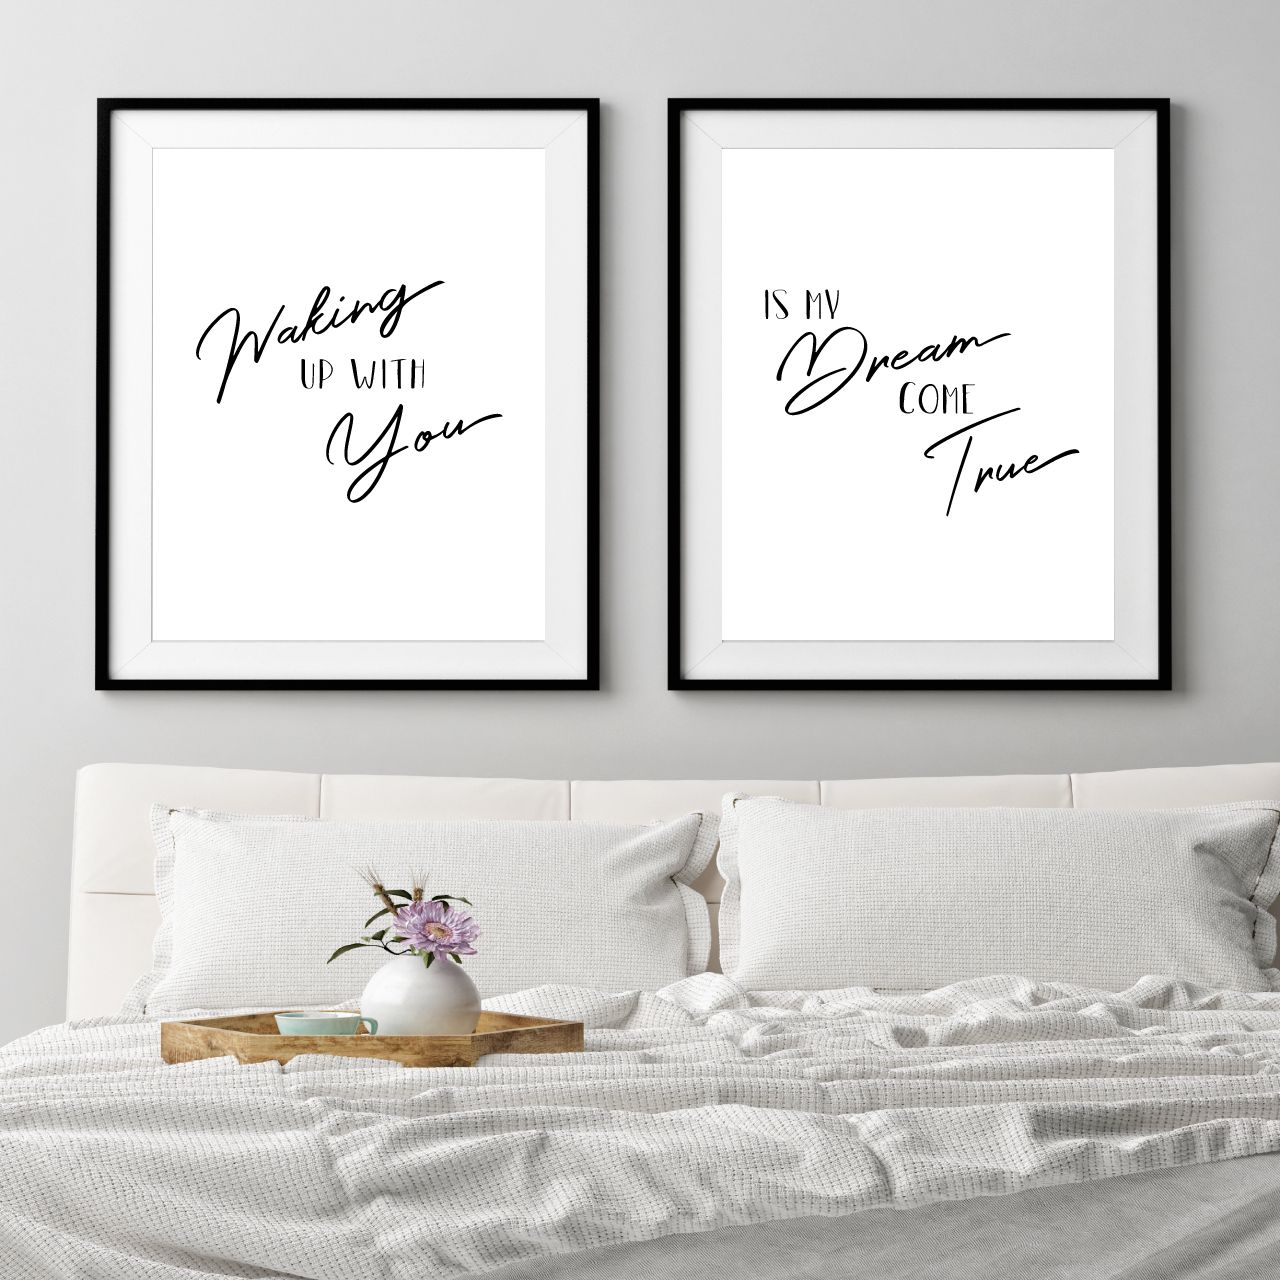 Any Size Couples Bedroom Prints Bedroom Goals Wall Art Couples